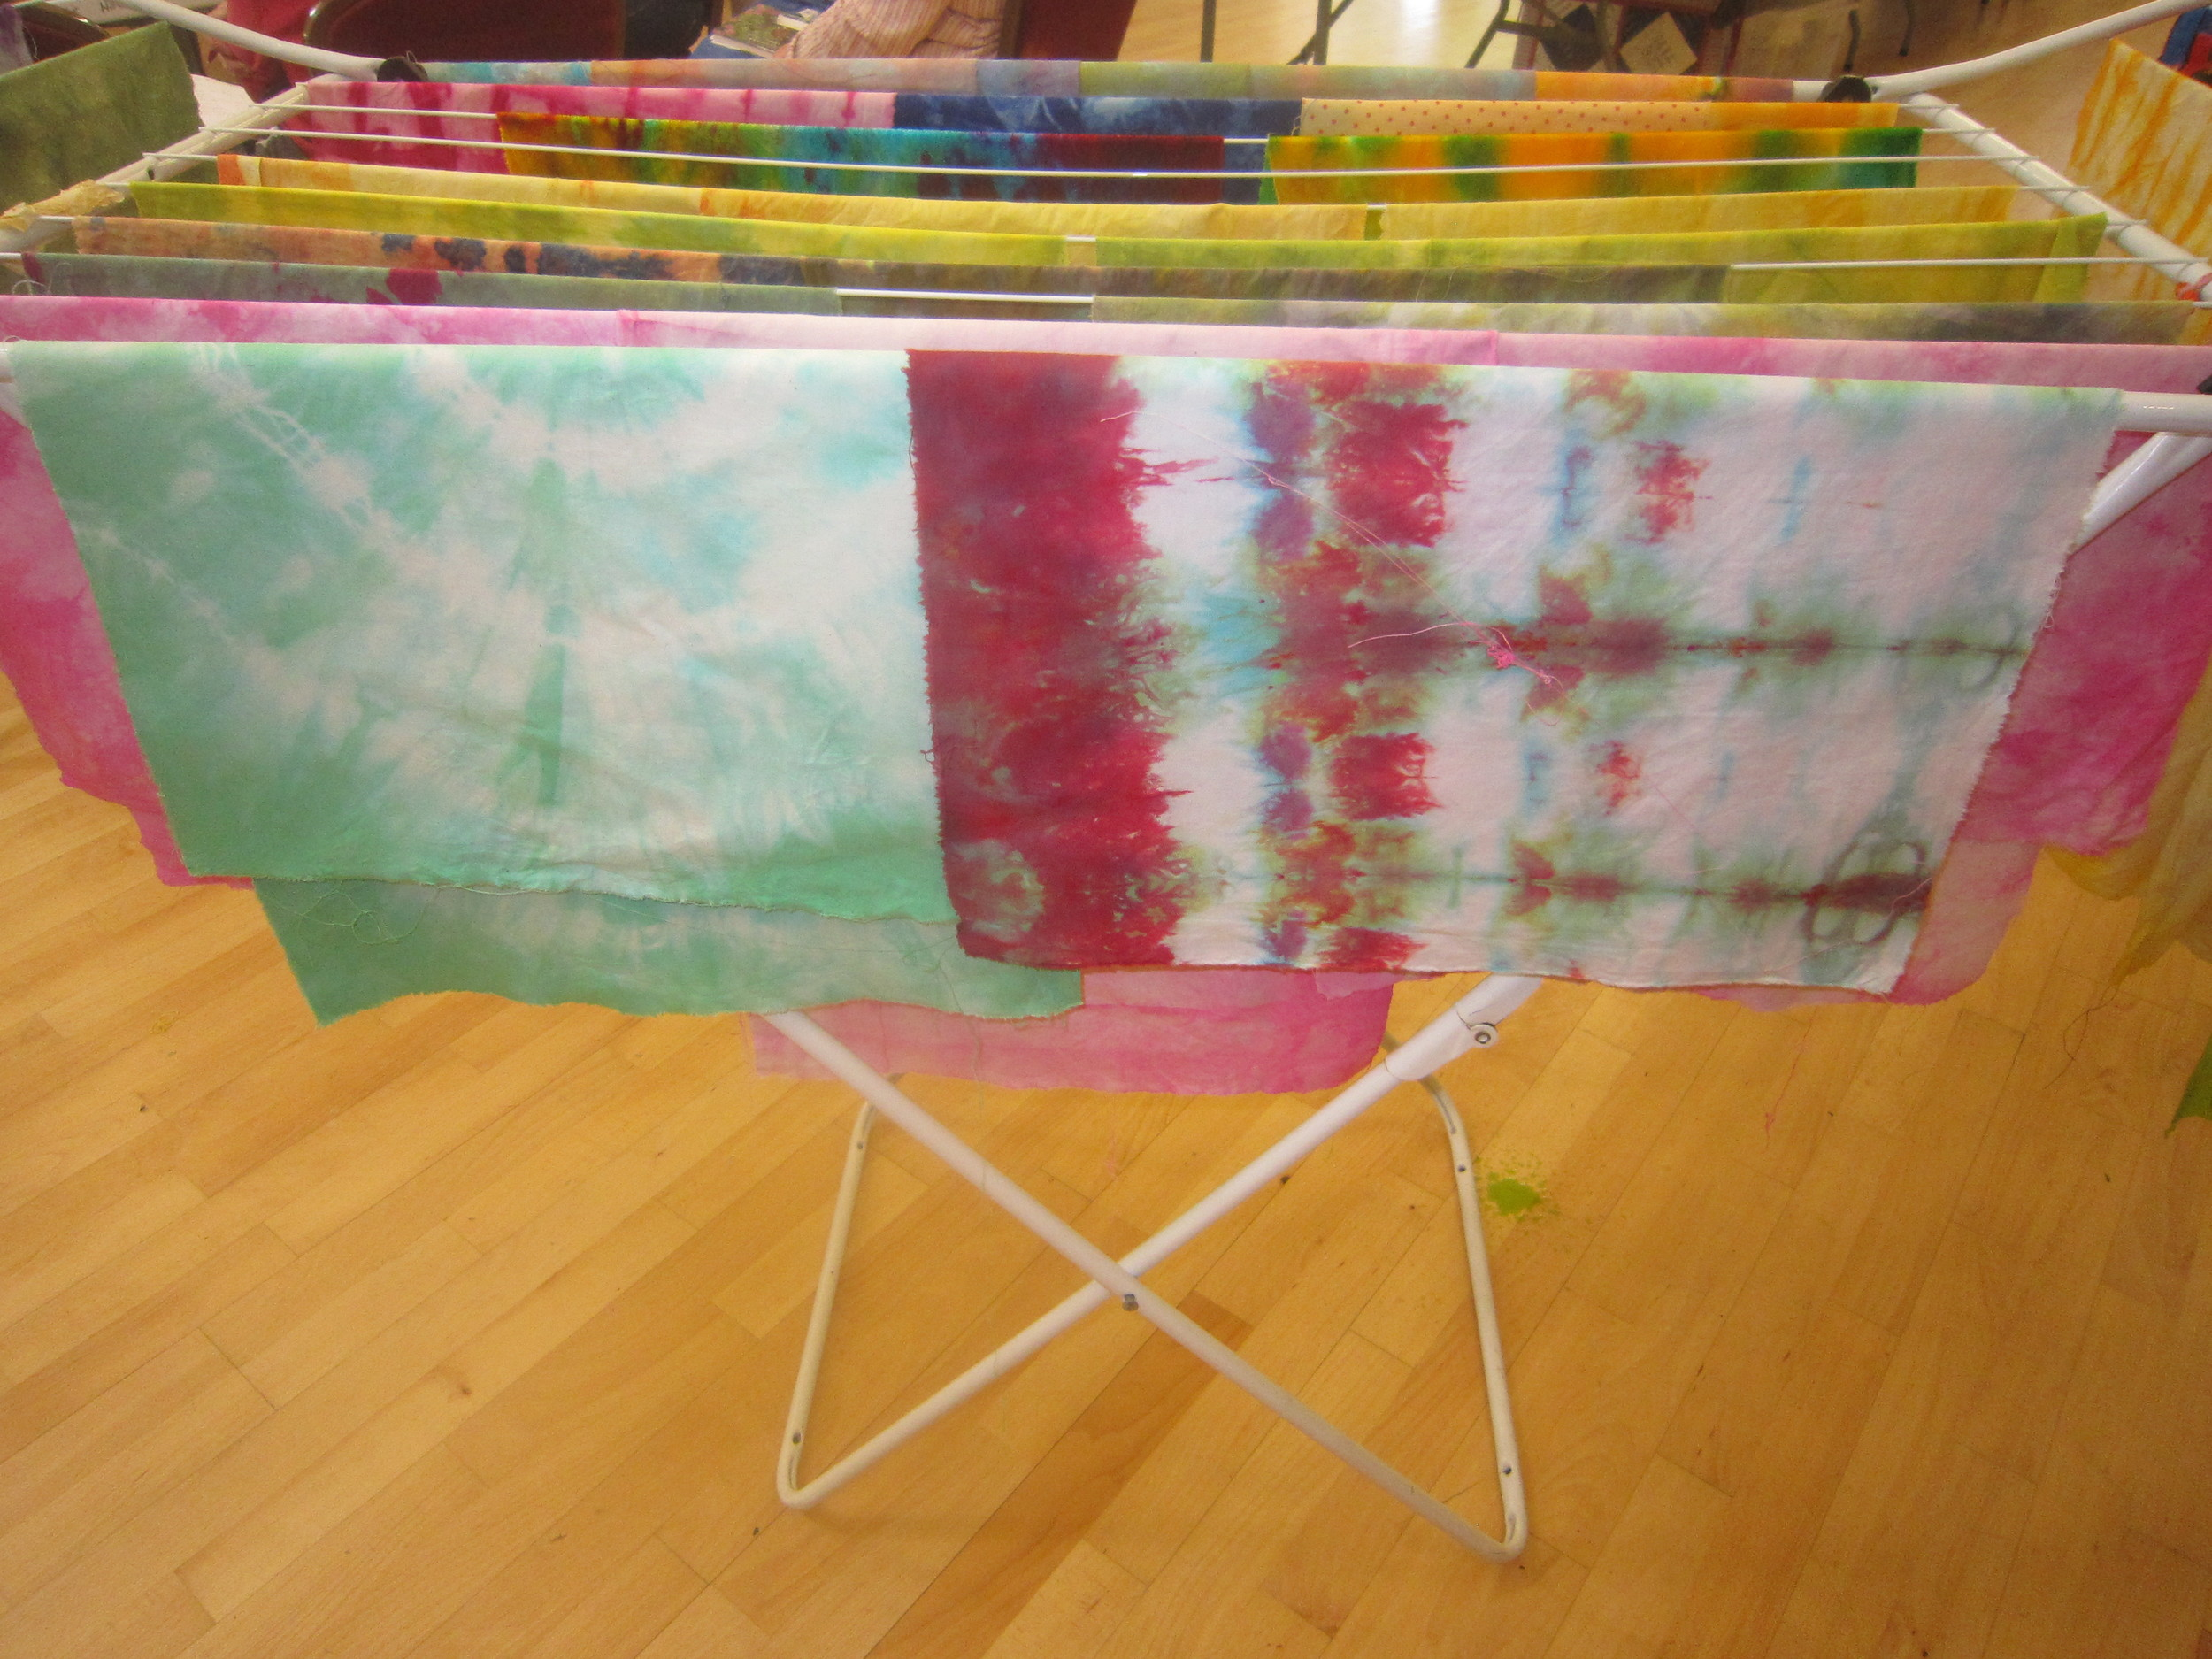 Fabric Dyeing and Painting Workshop - May 2015